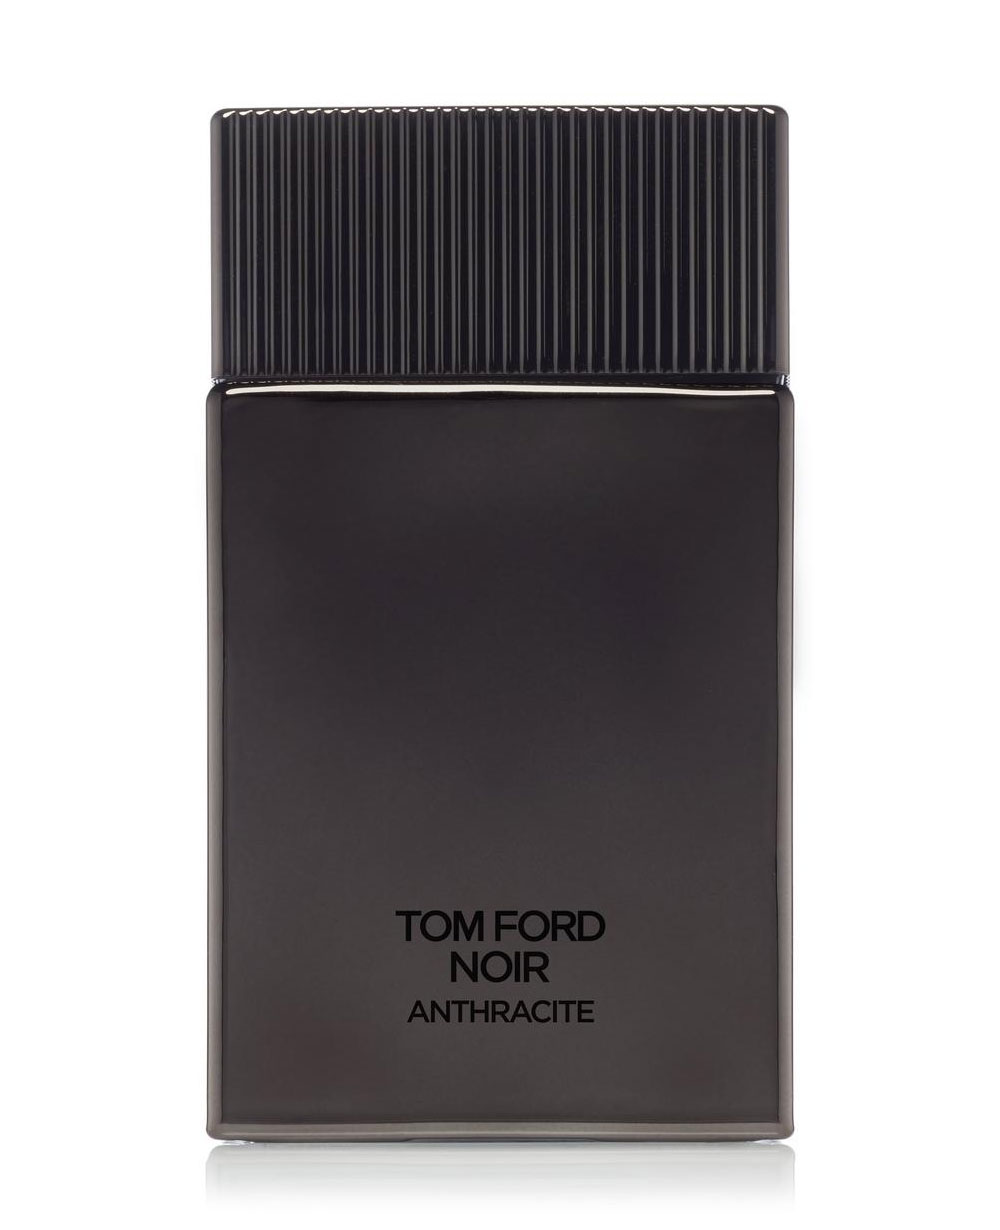 Brooklyn fragrance lover new tom ford noir anthracite for men new tom ford noir anthracite for men review deluxe sample giveaway dhlflorist Images